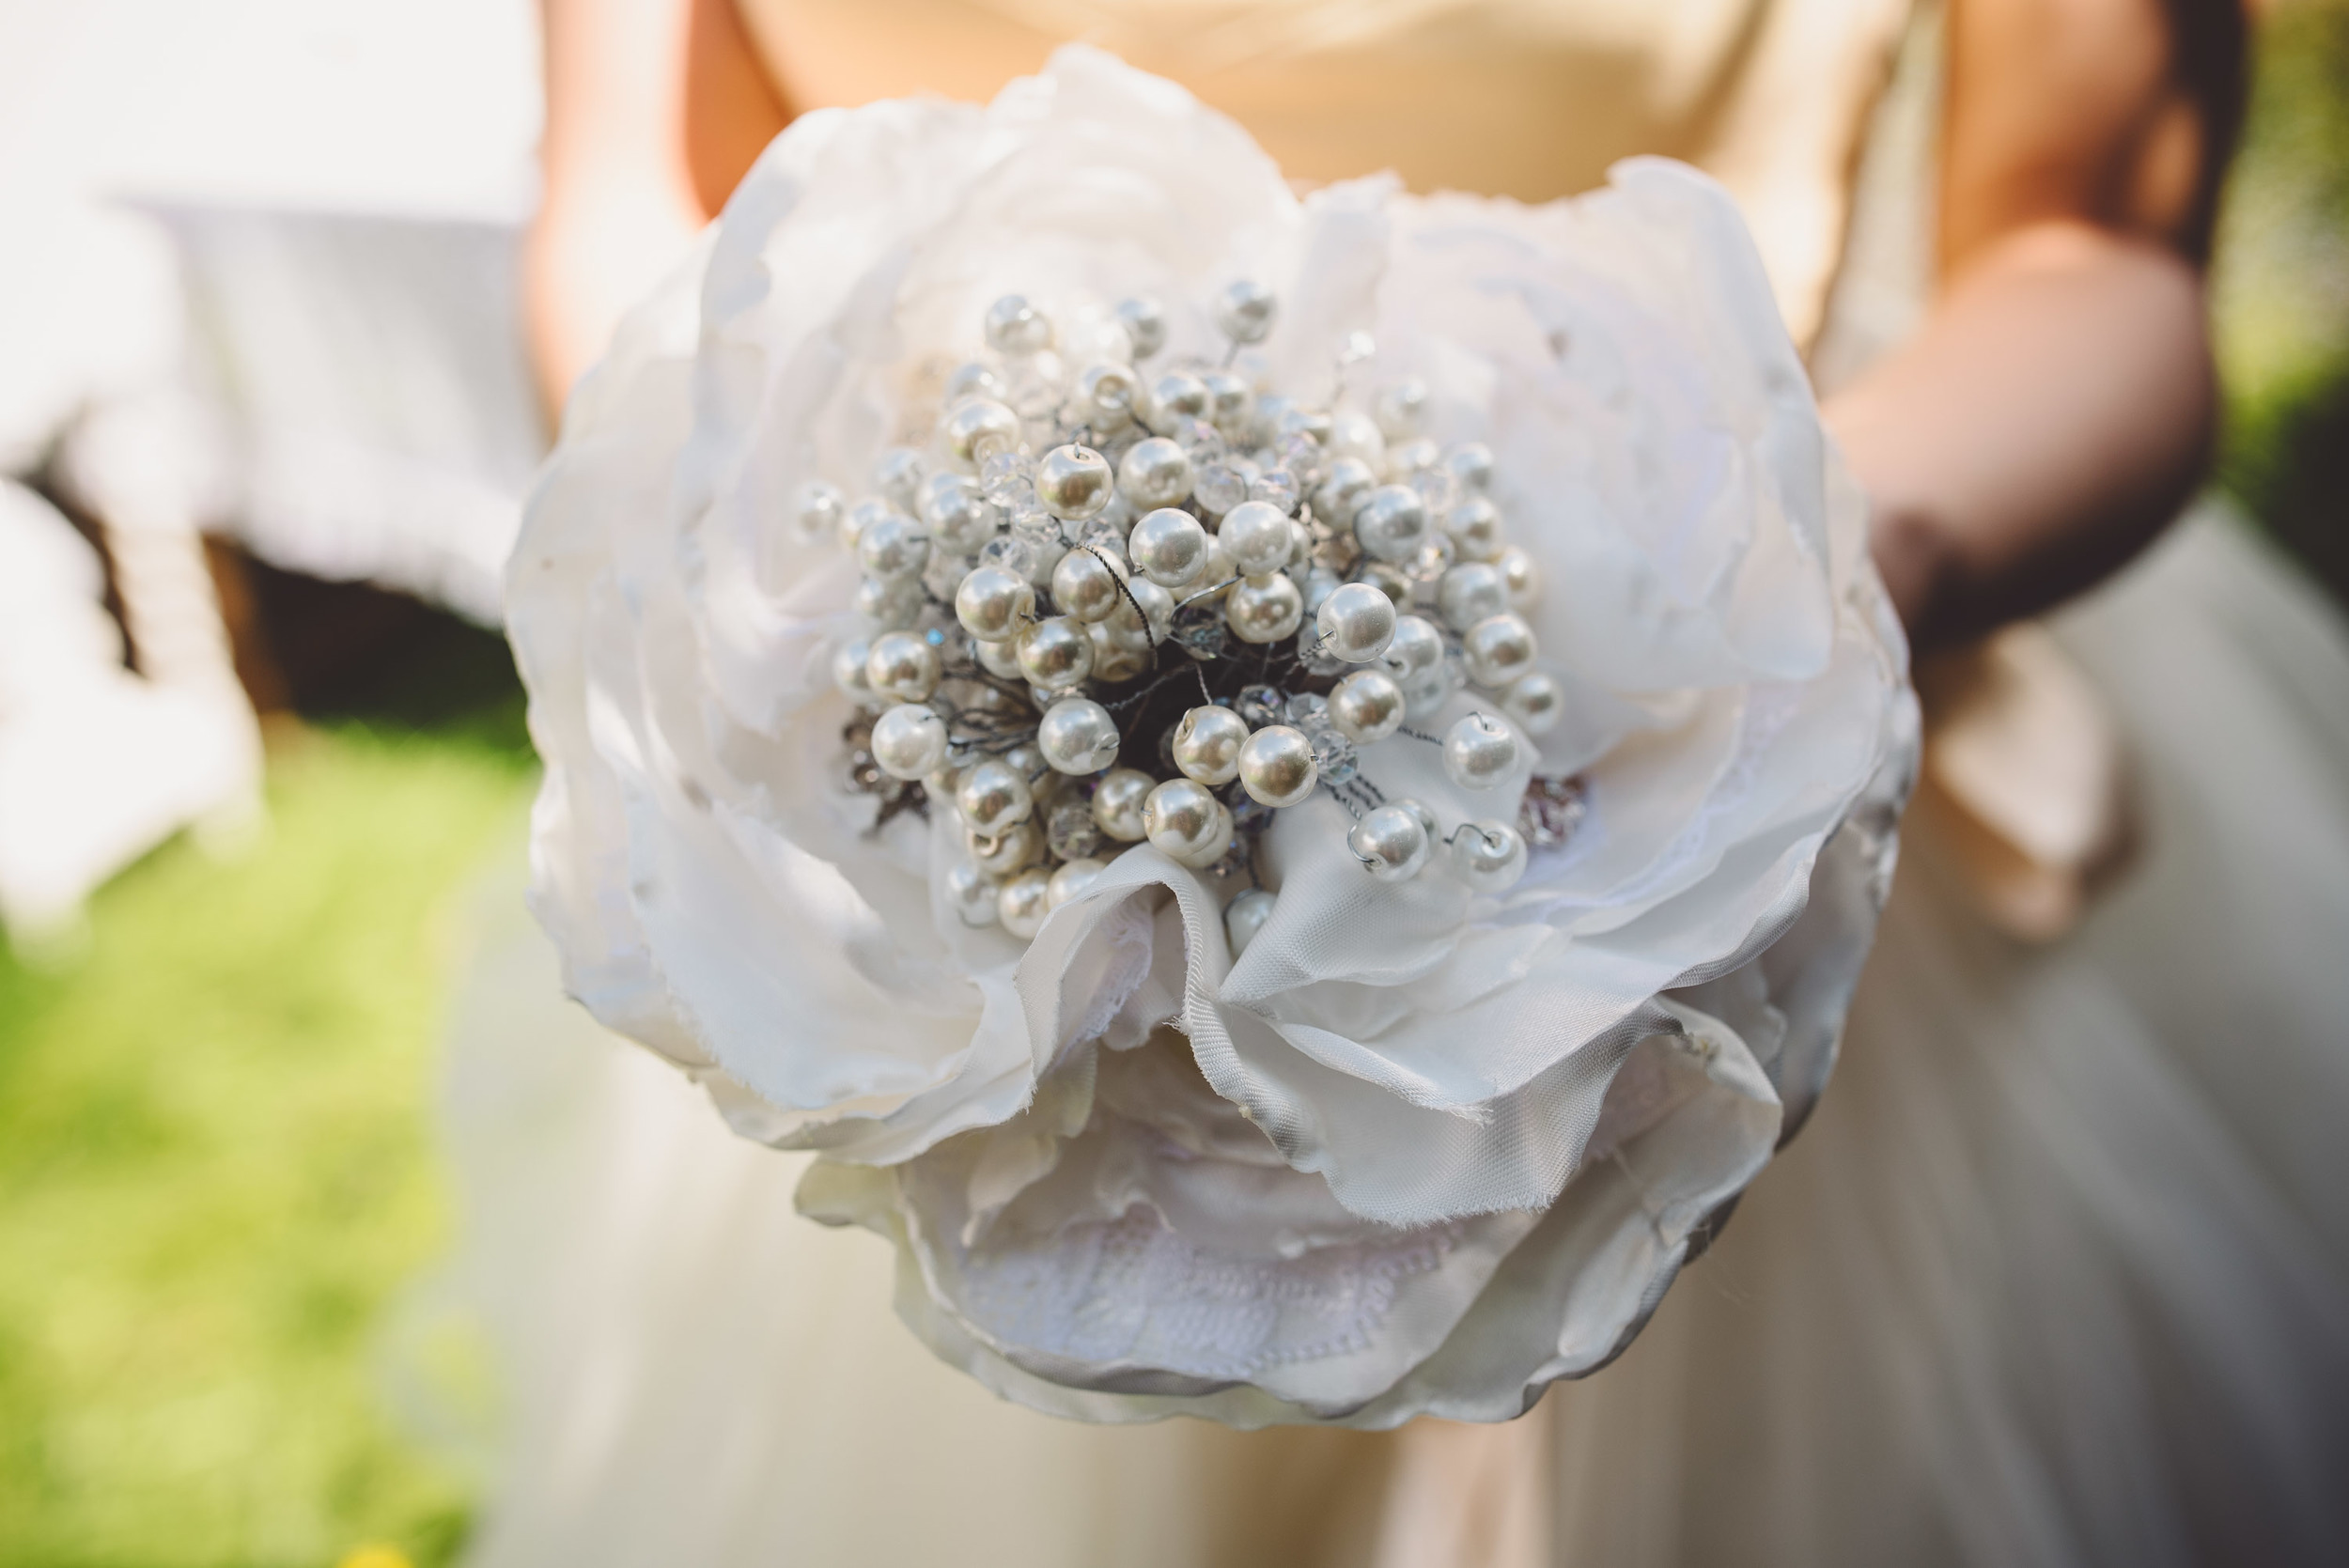 Single Flower Fabric Bouquet: Bespoke Vintage Castle                                                         Photo Credit: Becky Ryan Photography